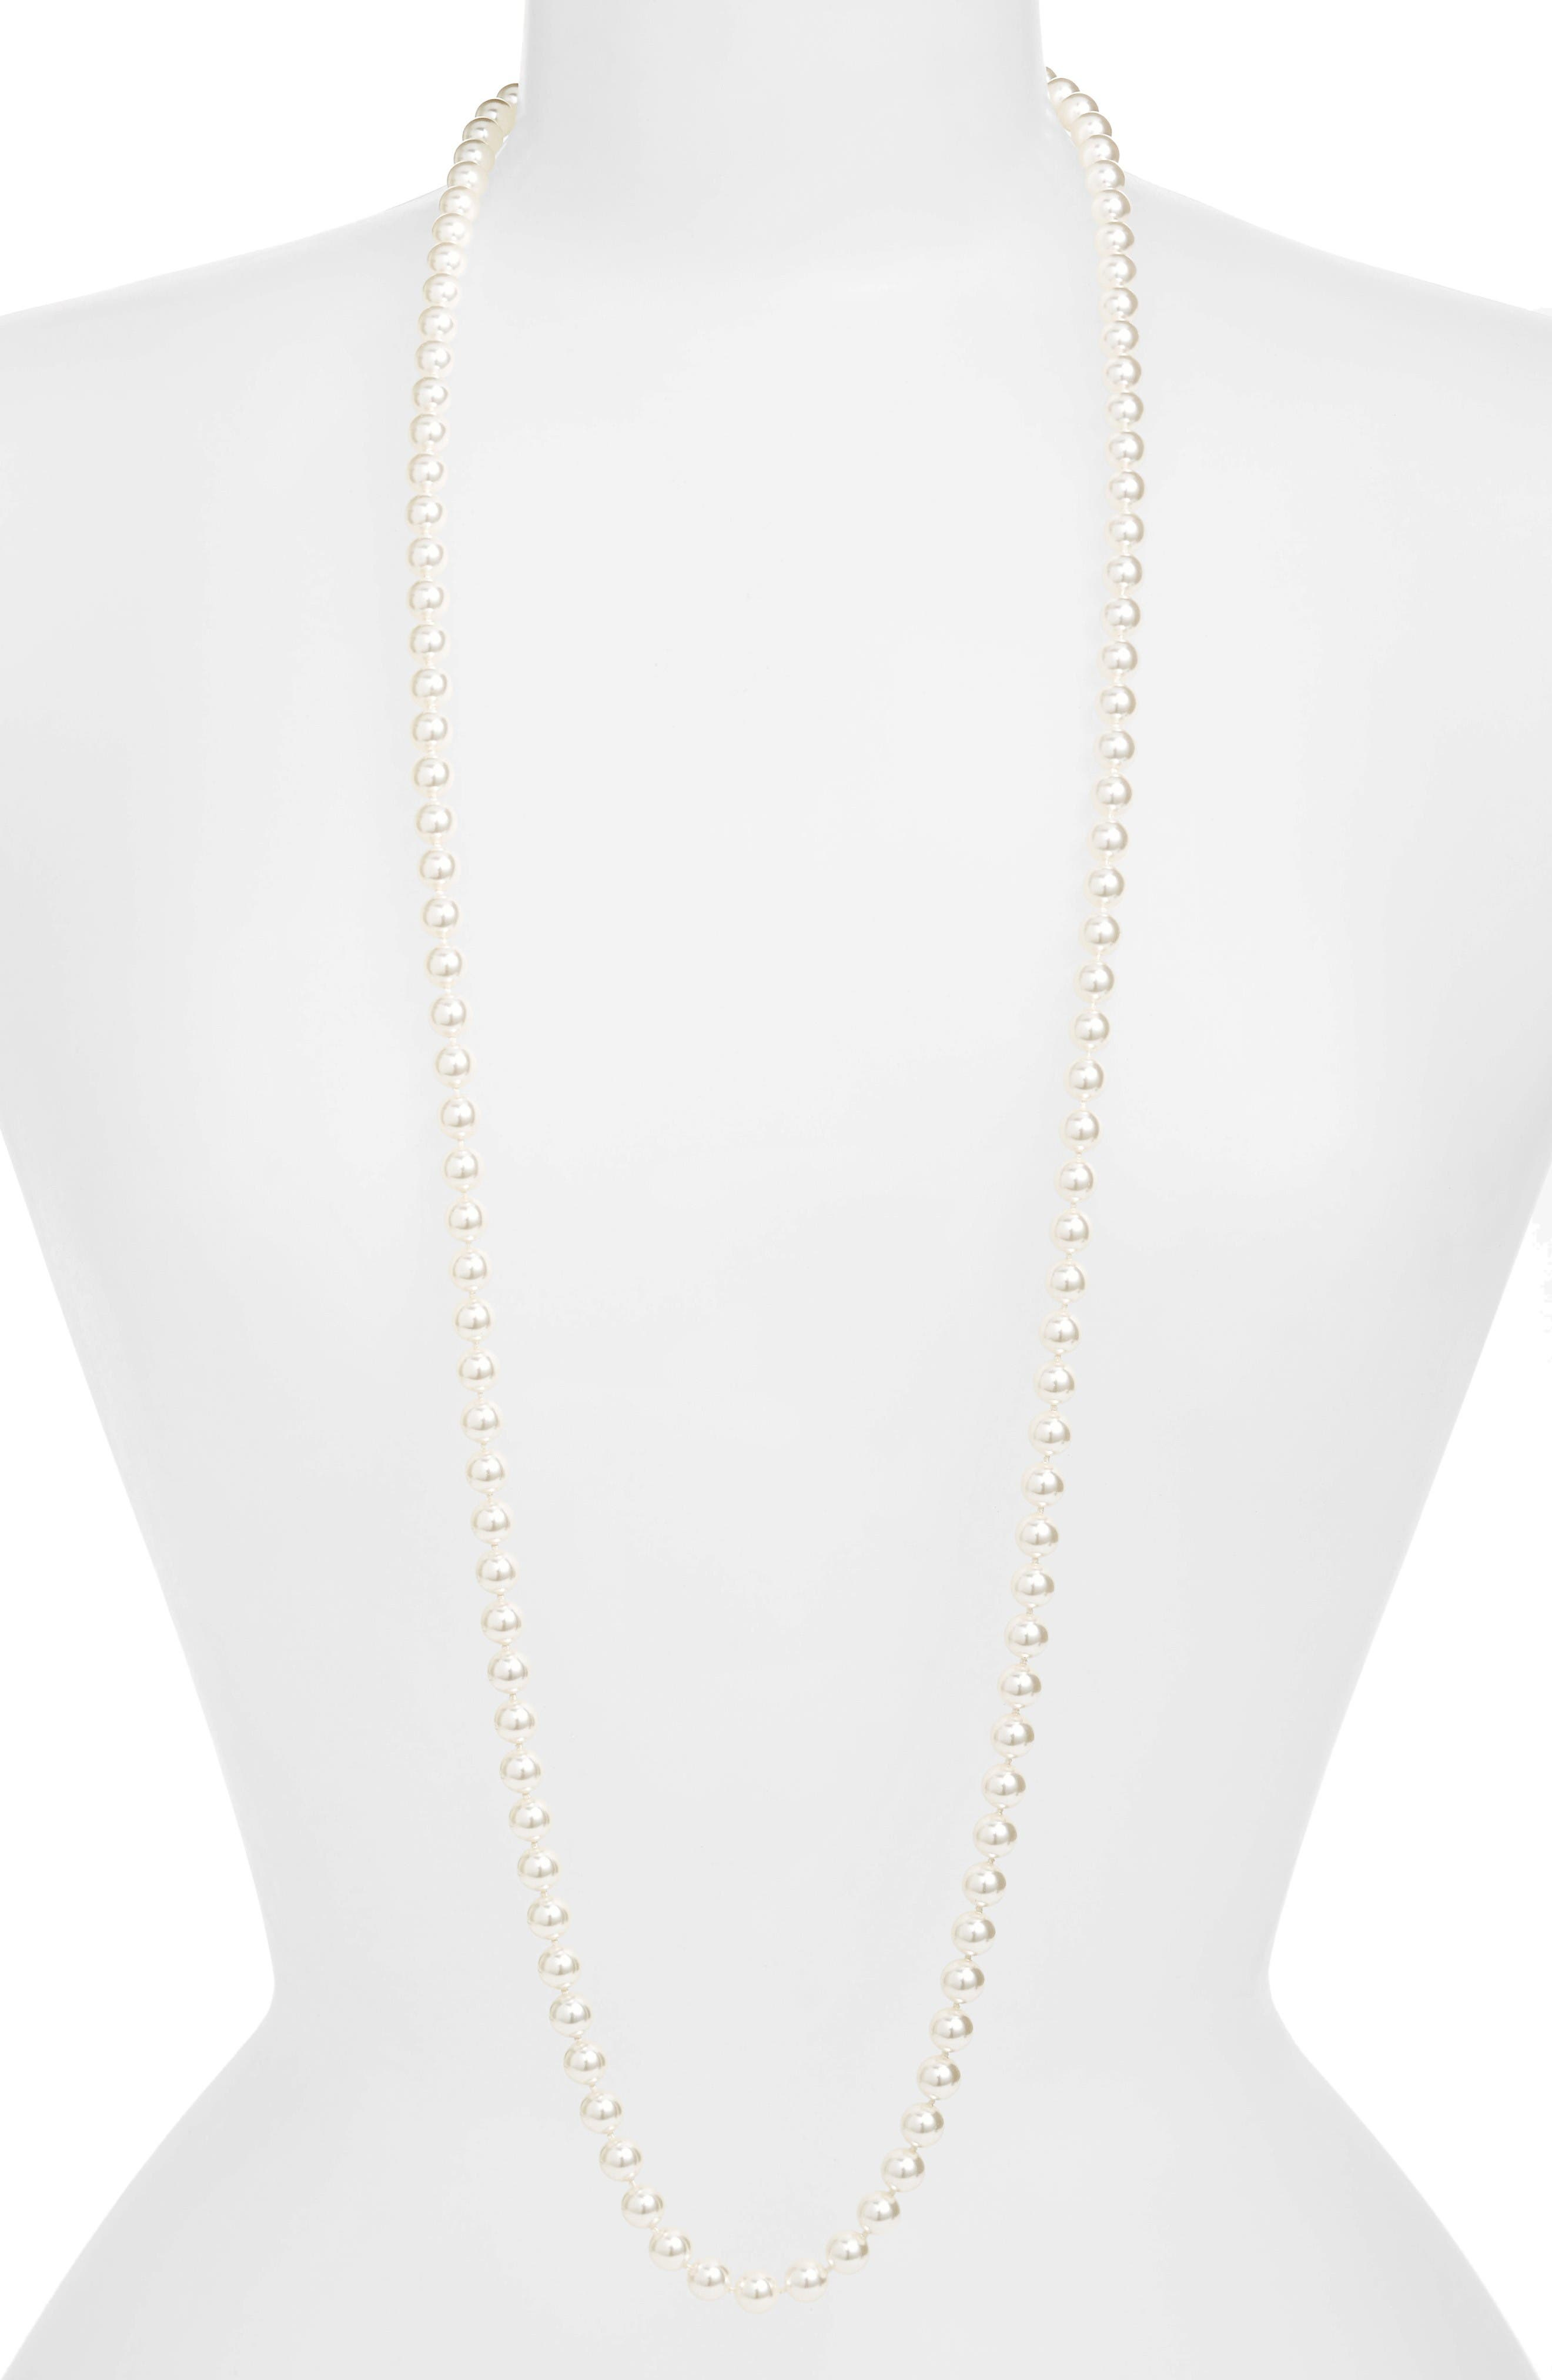 42-Inch Glass Pearl Strand Rope Necklace,                         Main,                         color, White Pearl